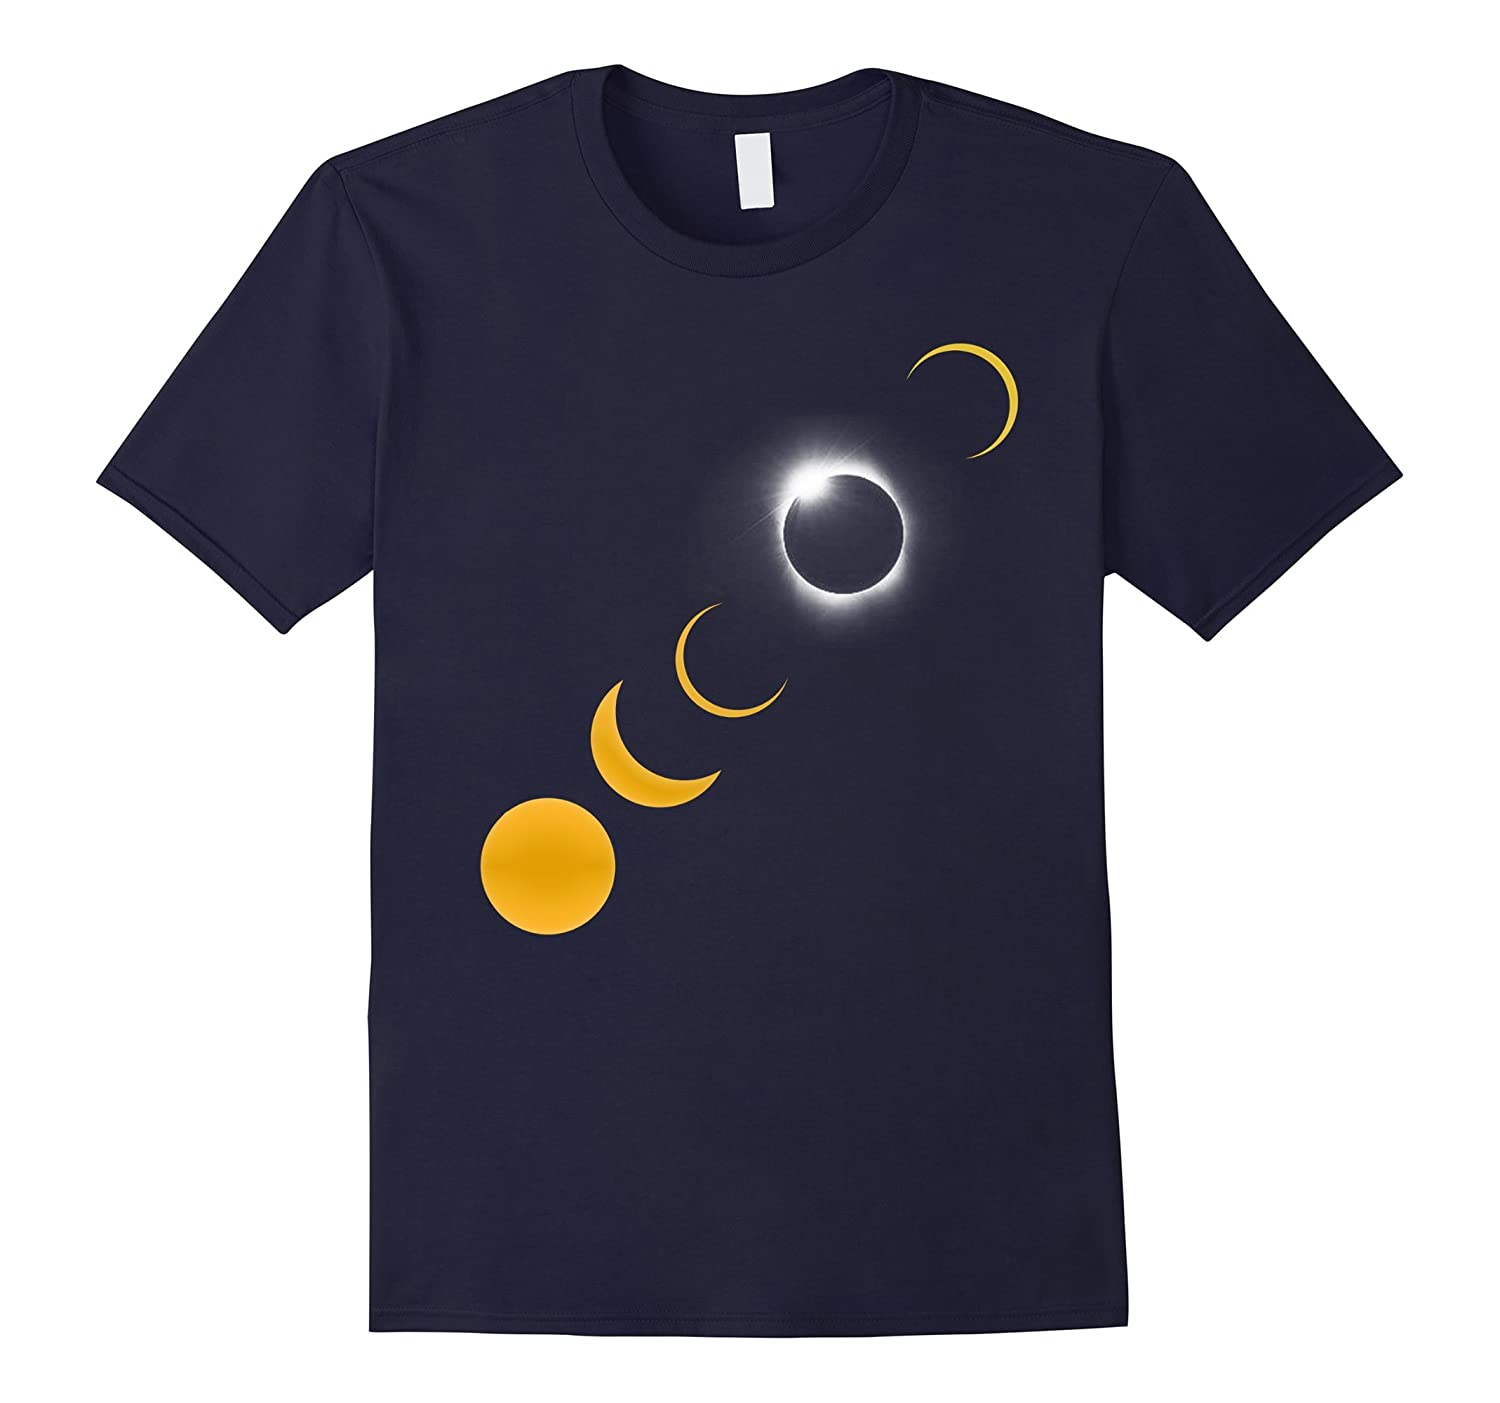 August 2017 Solar Eclipse Tee - Sun Eclipse Shirt Souvenirs-PL